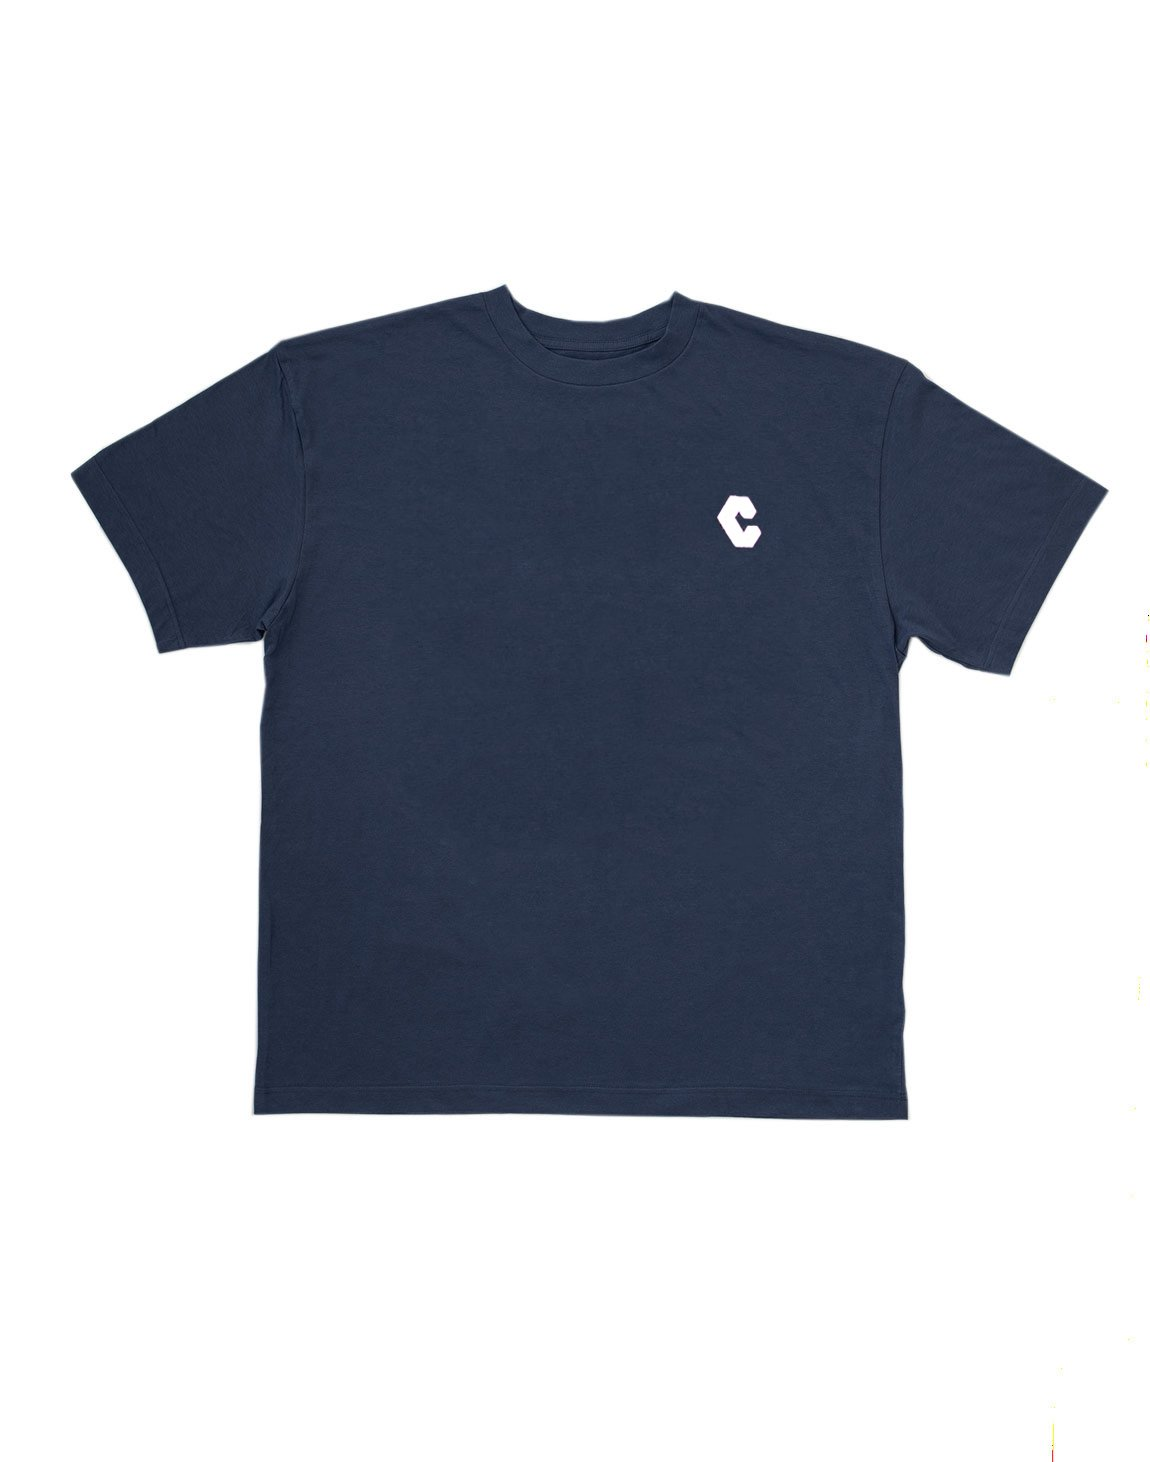 <img class='new_mark_img1' src='https://img.shop-pro.jp/img/new/icons55.gif' style='border:none;display:inline;margin:0px;padding:0px;width:auto;' />CRNS NEW BACK BIG  LOGO T-SHIRTS【NAVY】